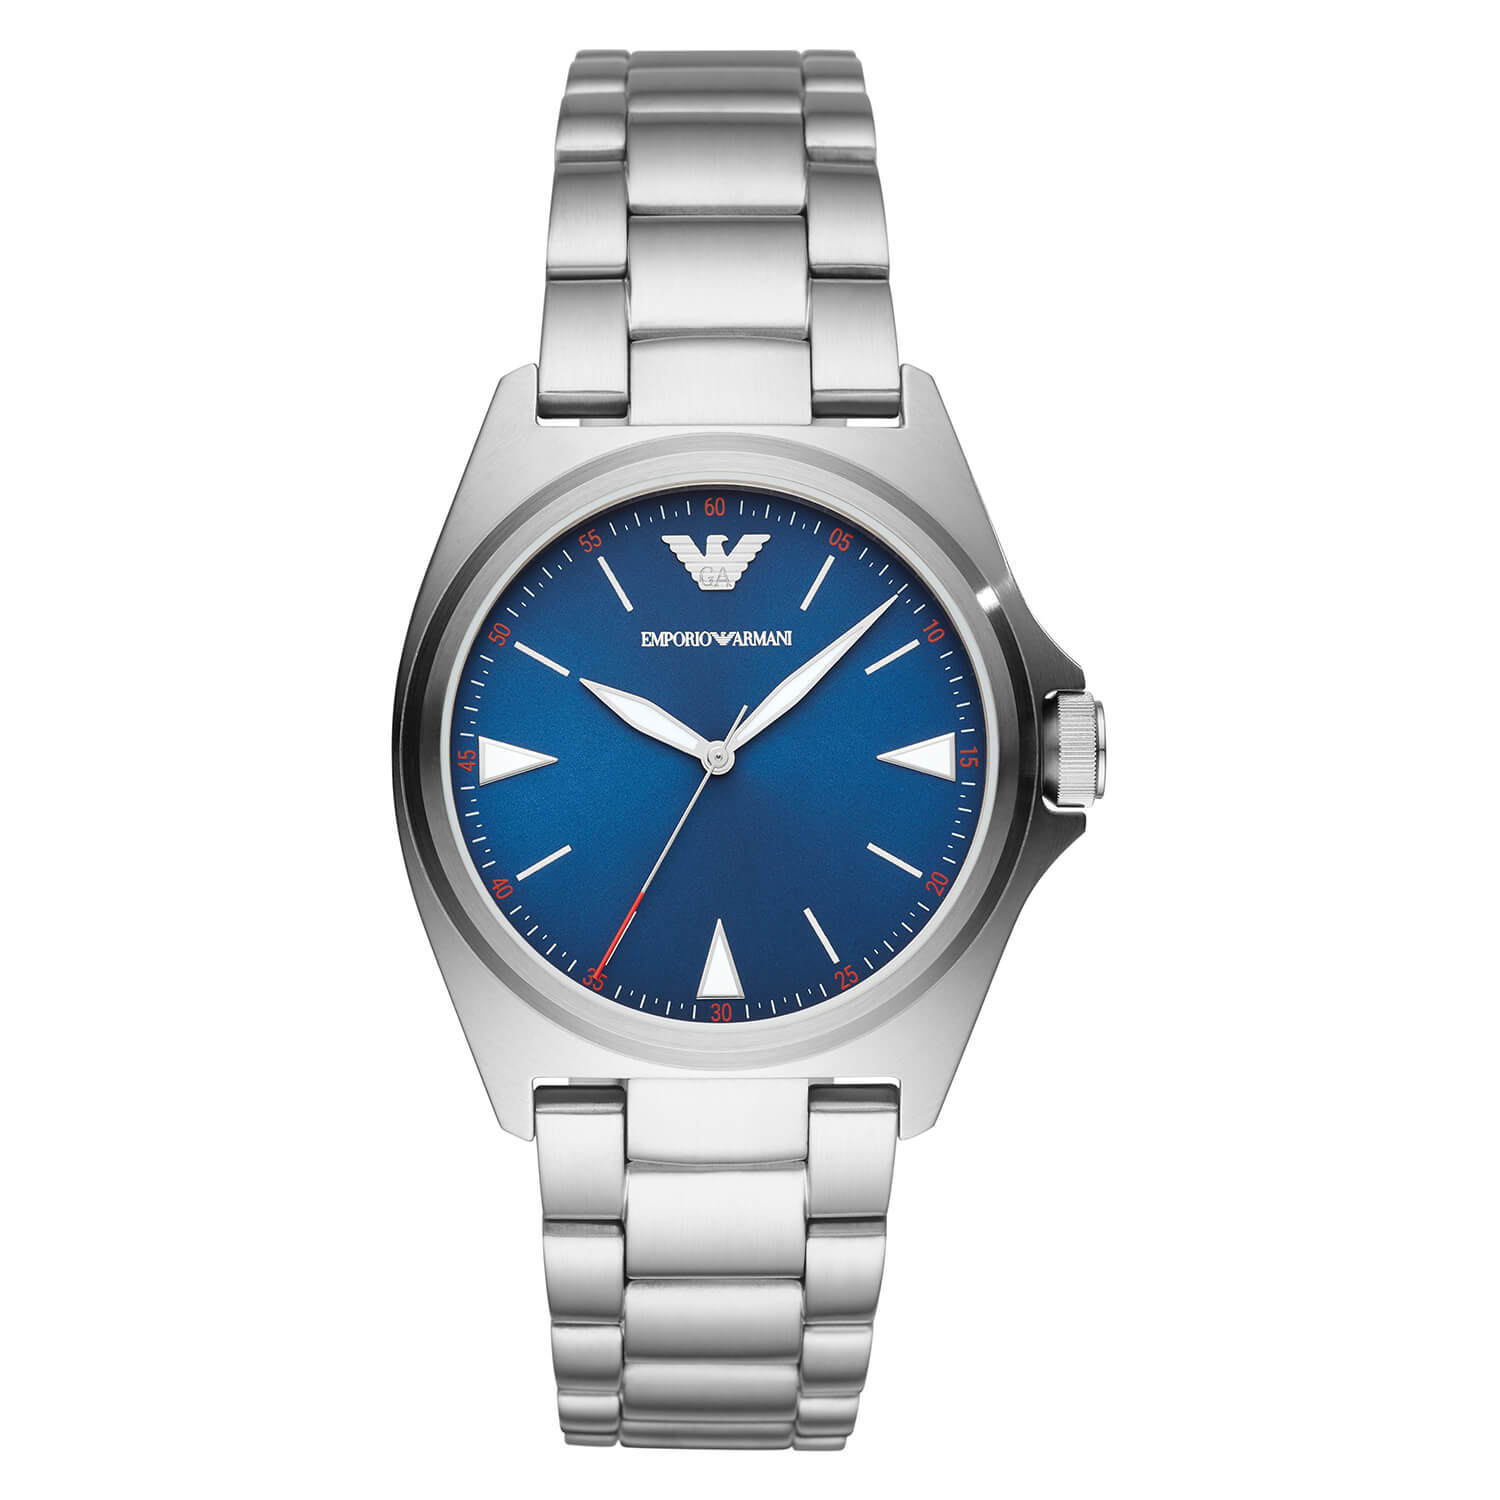 Emporio Armani Nicola Mens Quartz Stainless Steel Watch